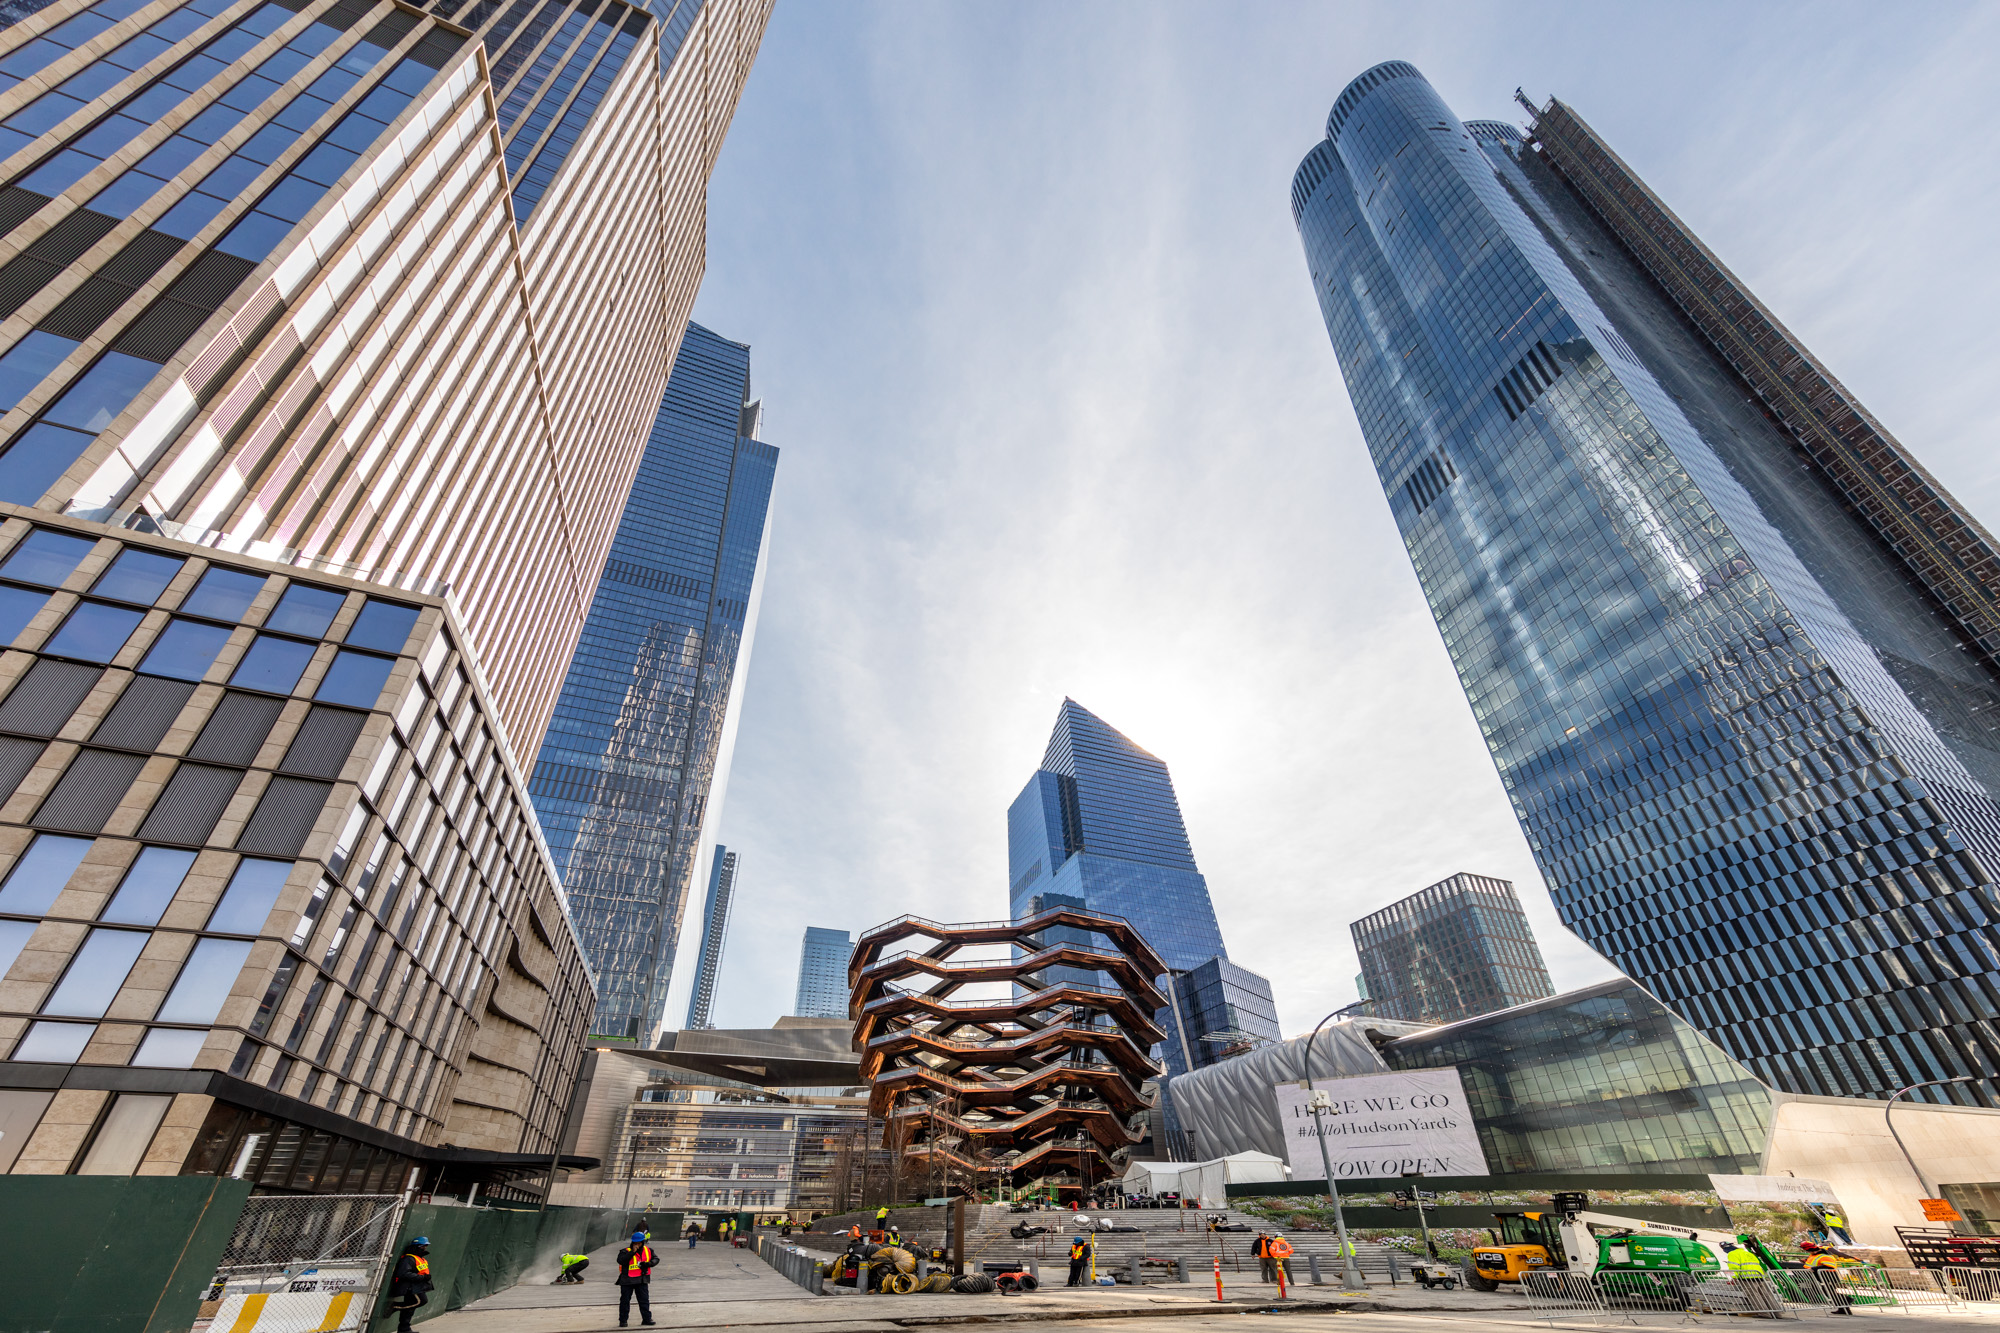 Several tall buildings with glass facades surround a landmark that is shaped like a beehive and made from steel.